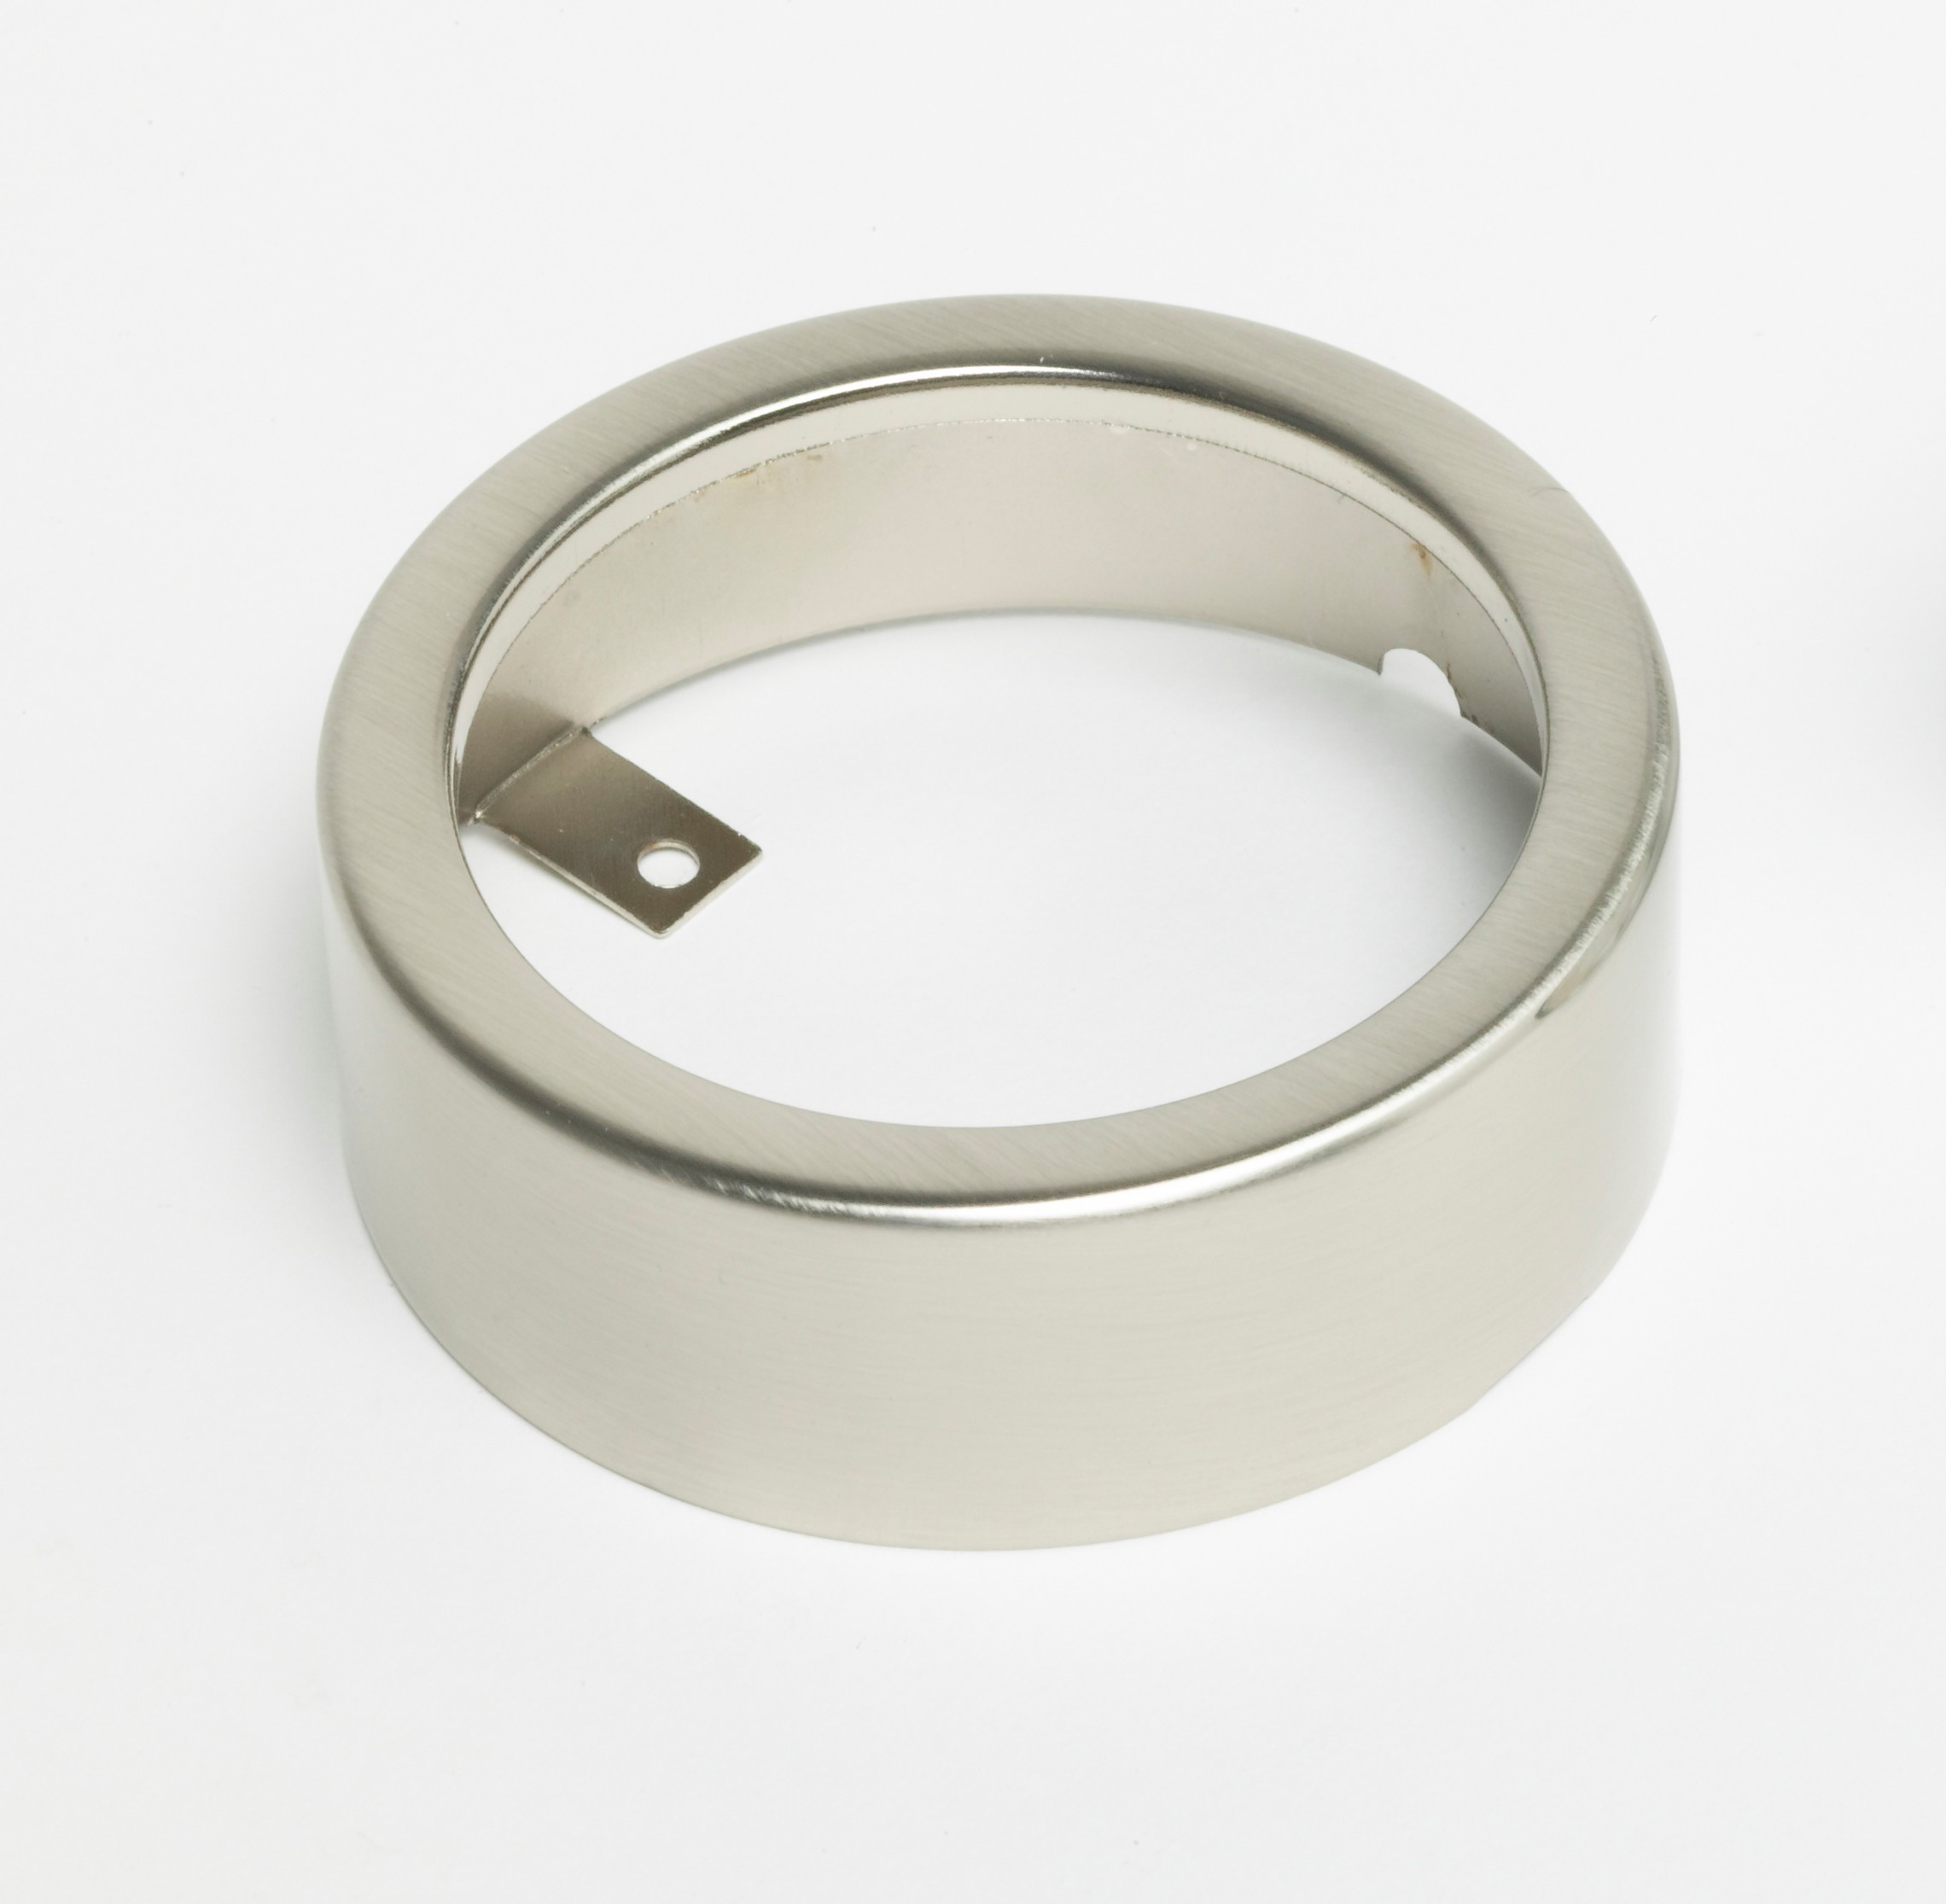 Surface mounting ring for L/LMLV/CHL stainless steel